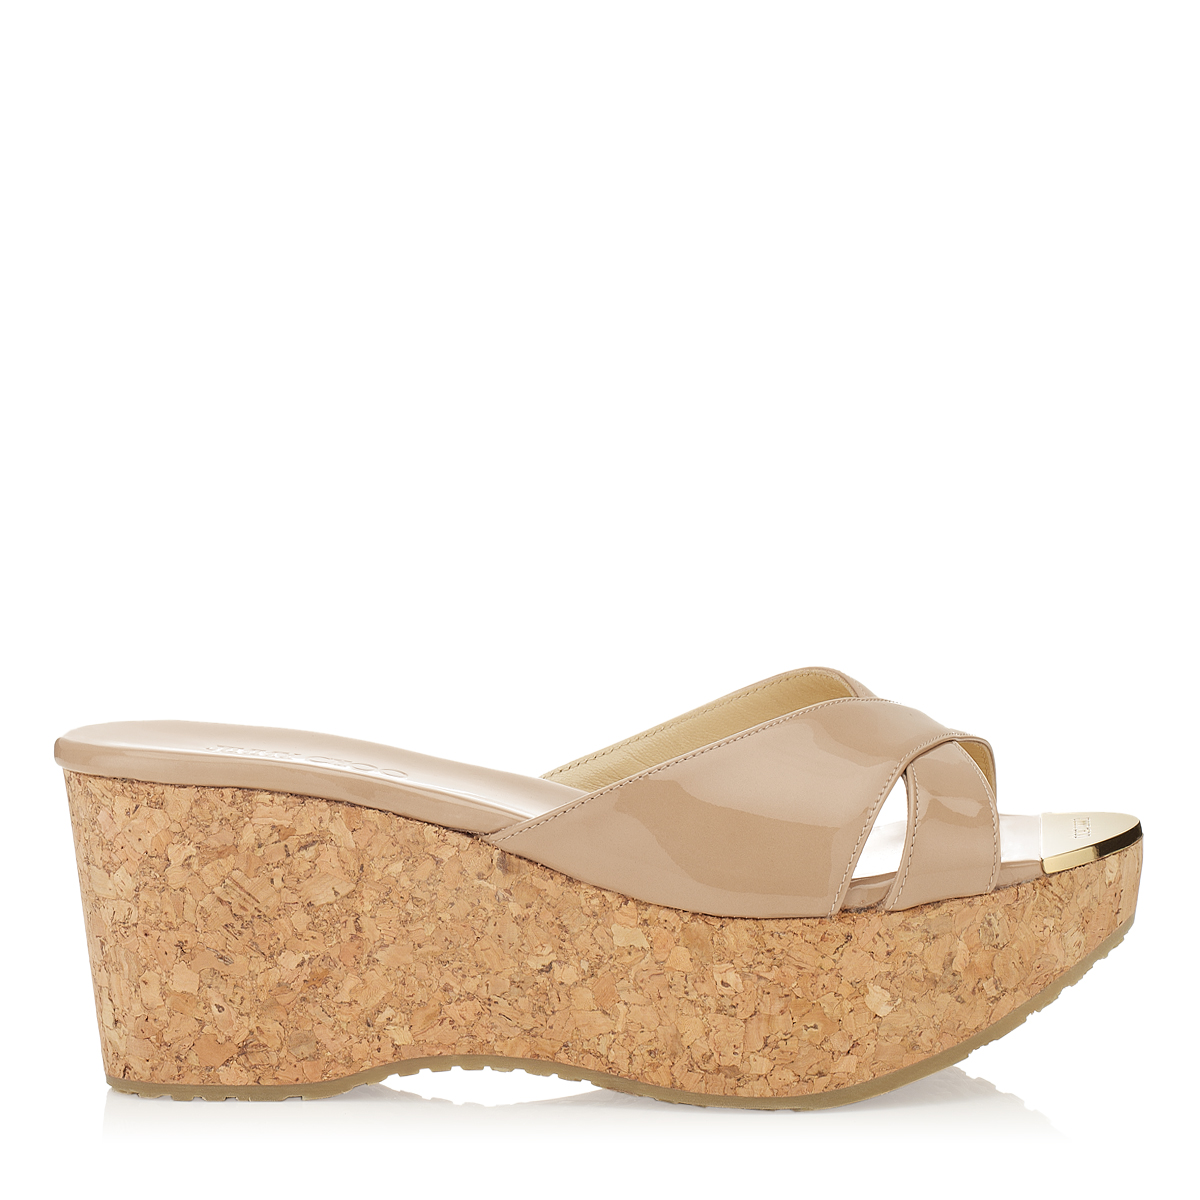 jimmy choo female prima nude patent leather wedge sandals